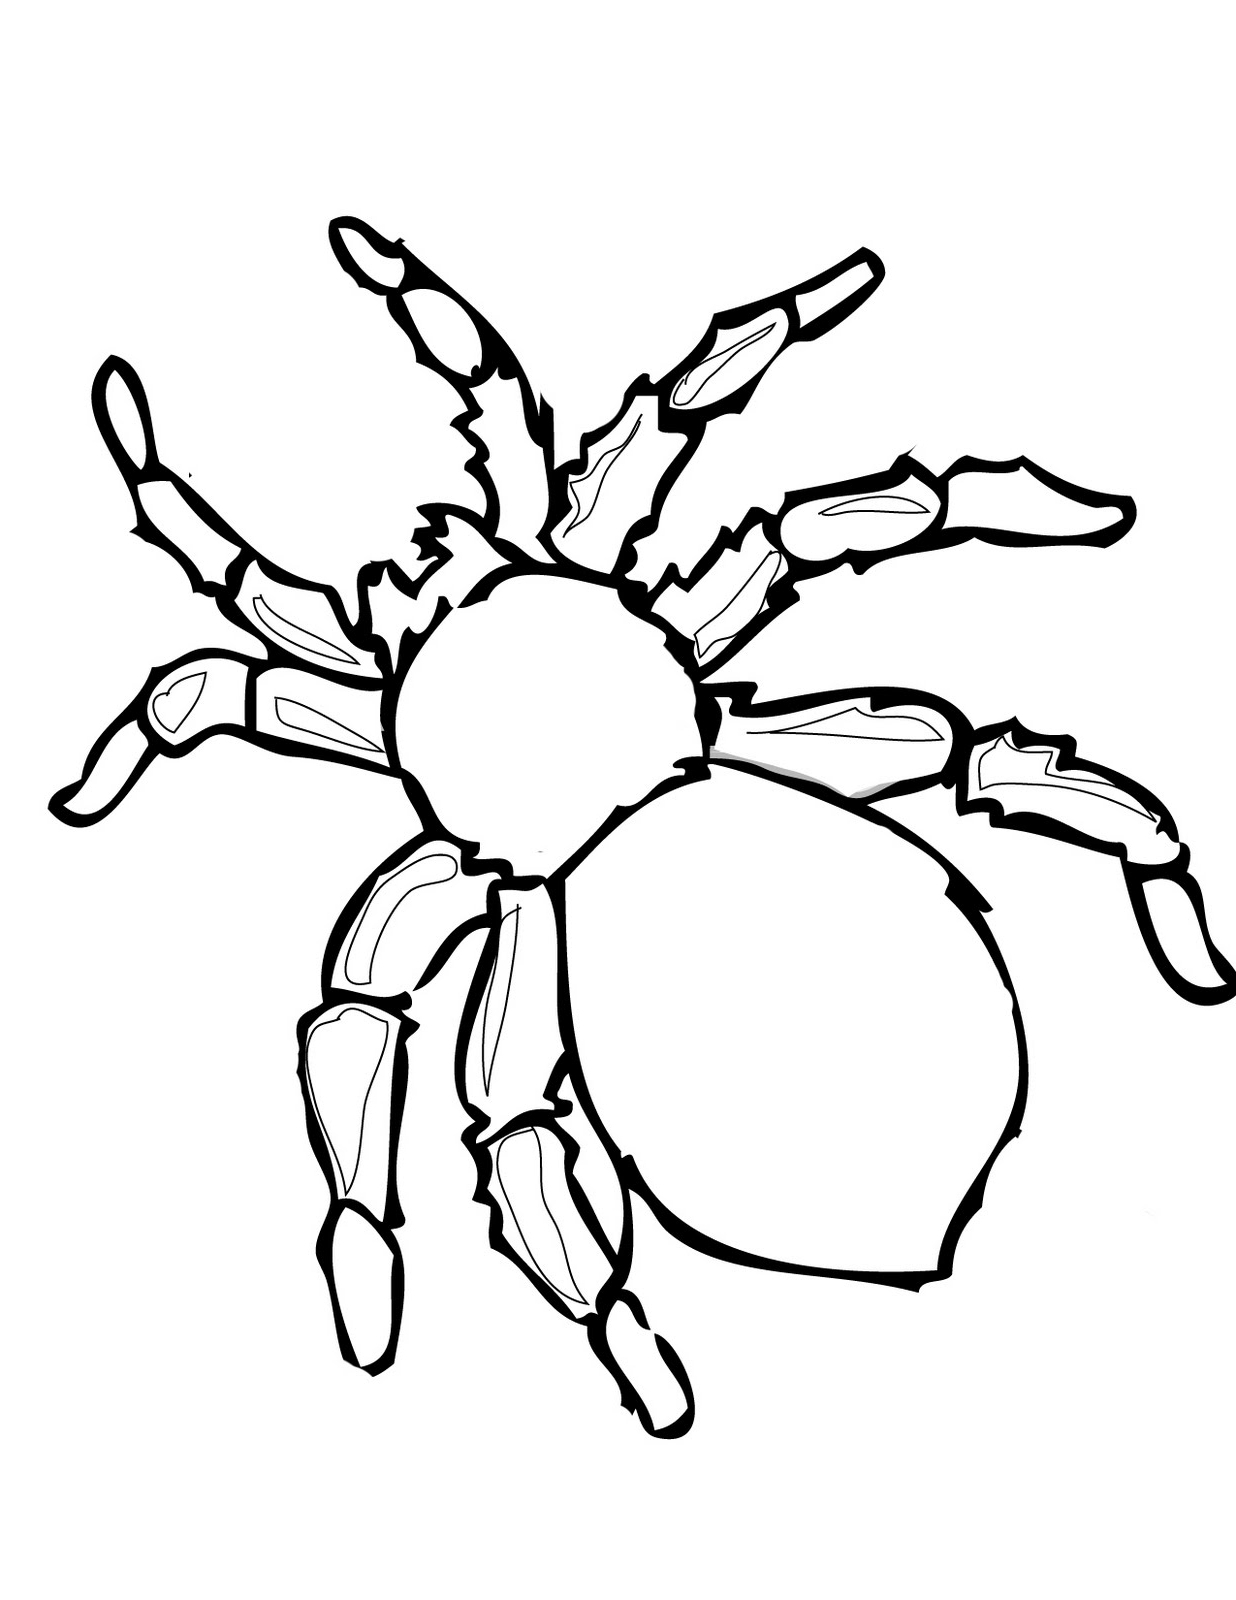 tarantula coloring pages halloween spider coloring pages at getcoloringscom free tarantula pages coloring